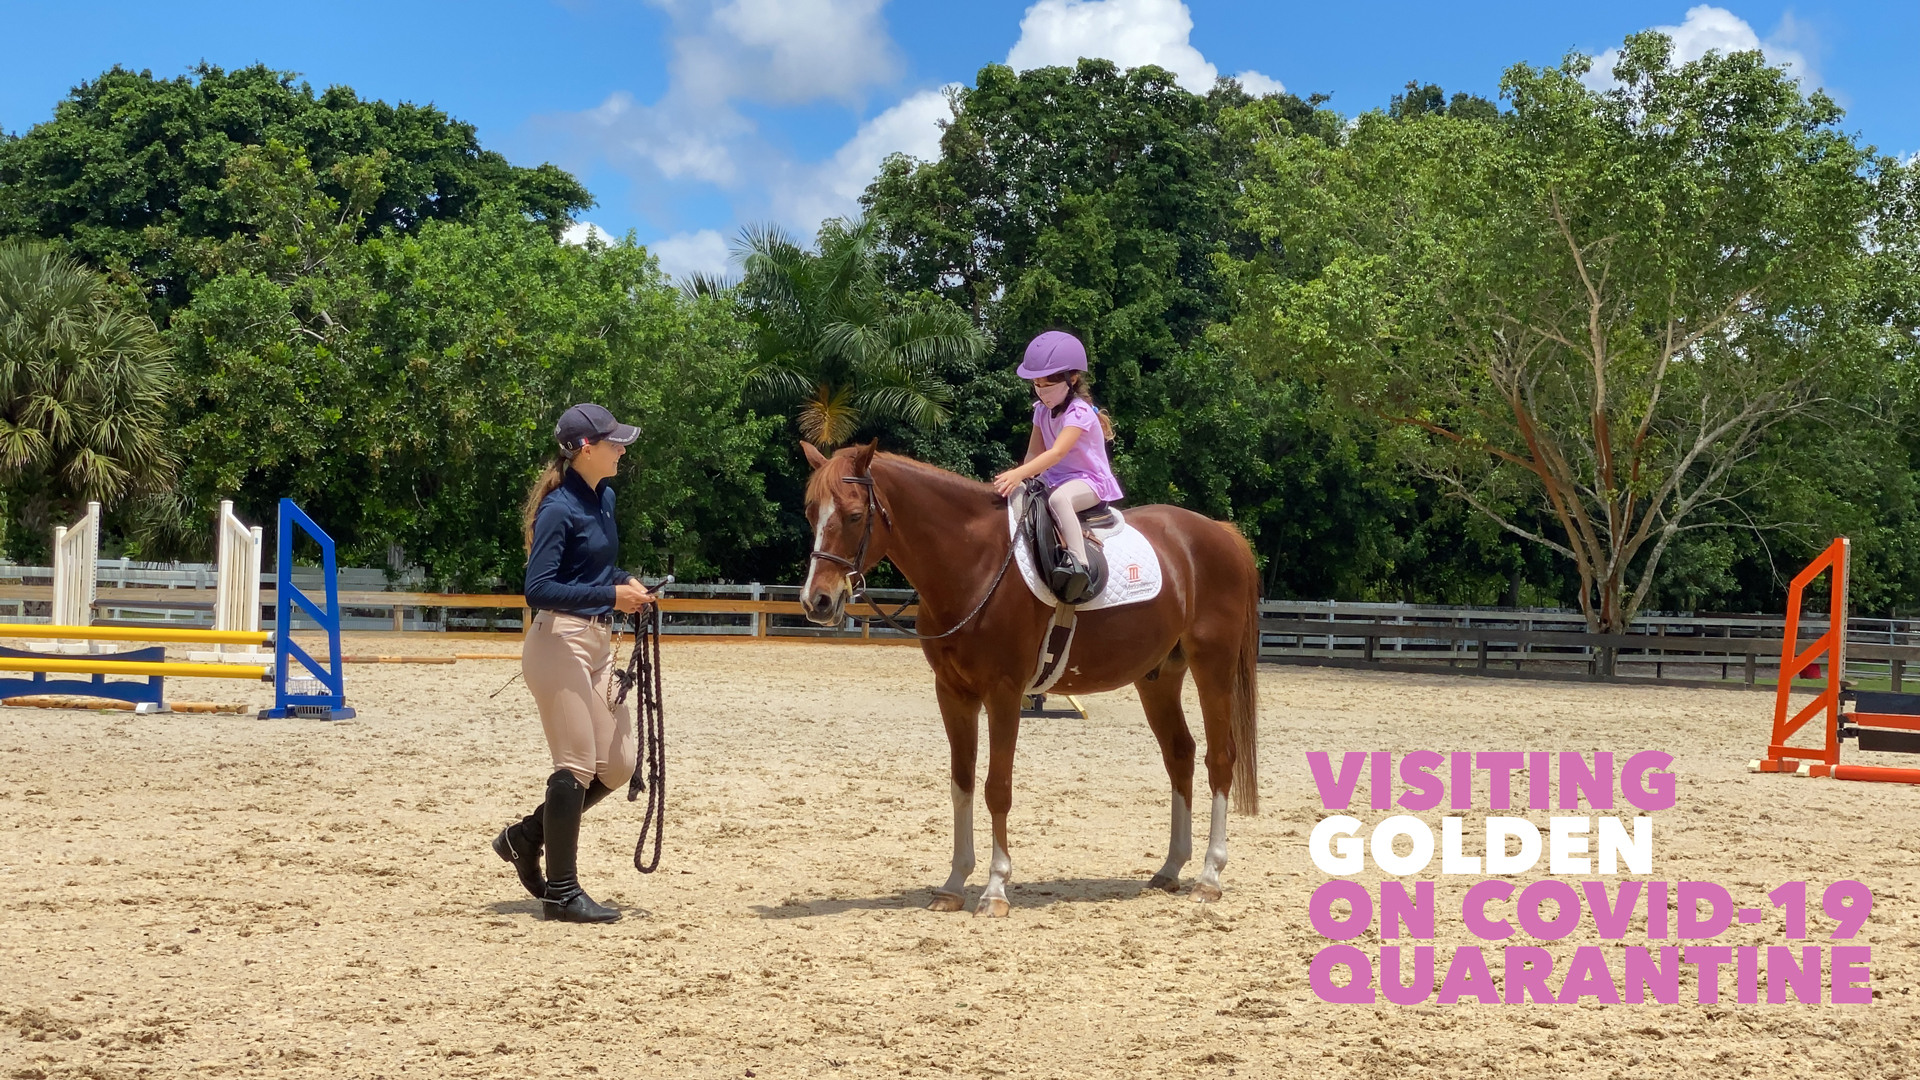 PENELOPE VISITING GOLDEN ON COVID-19 QUARANTINE EQUESTRIAN GIRL